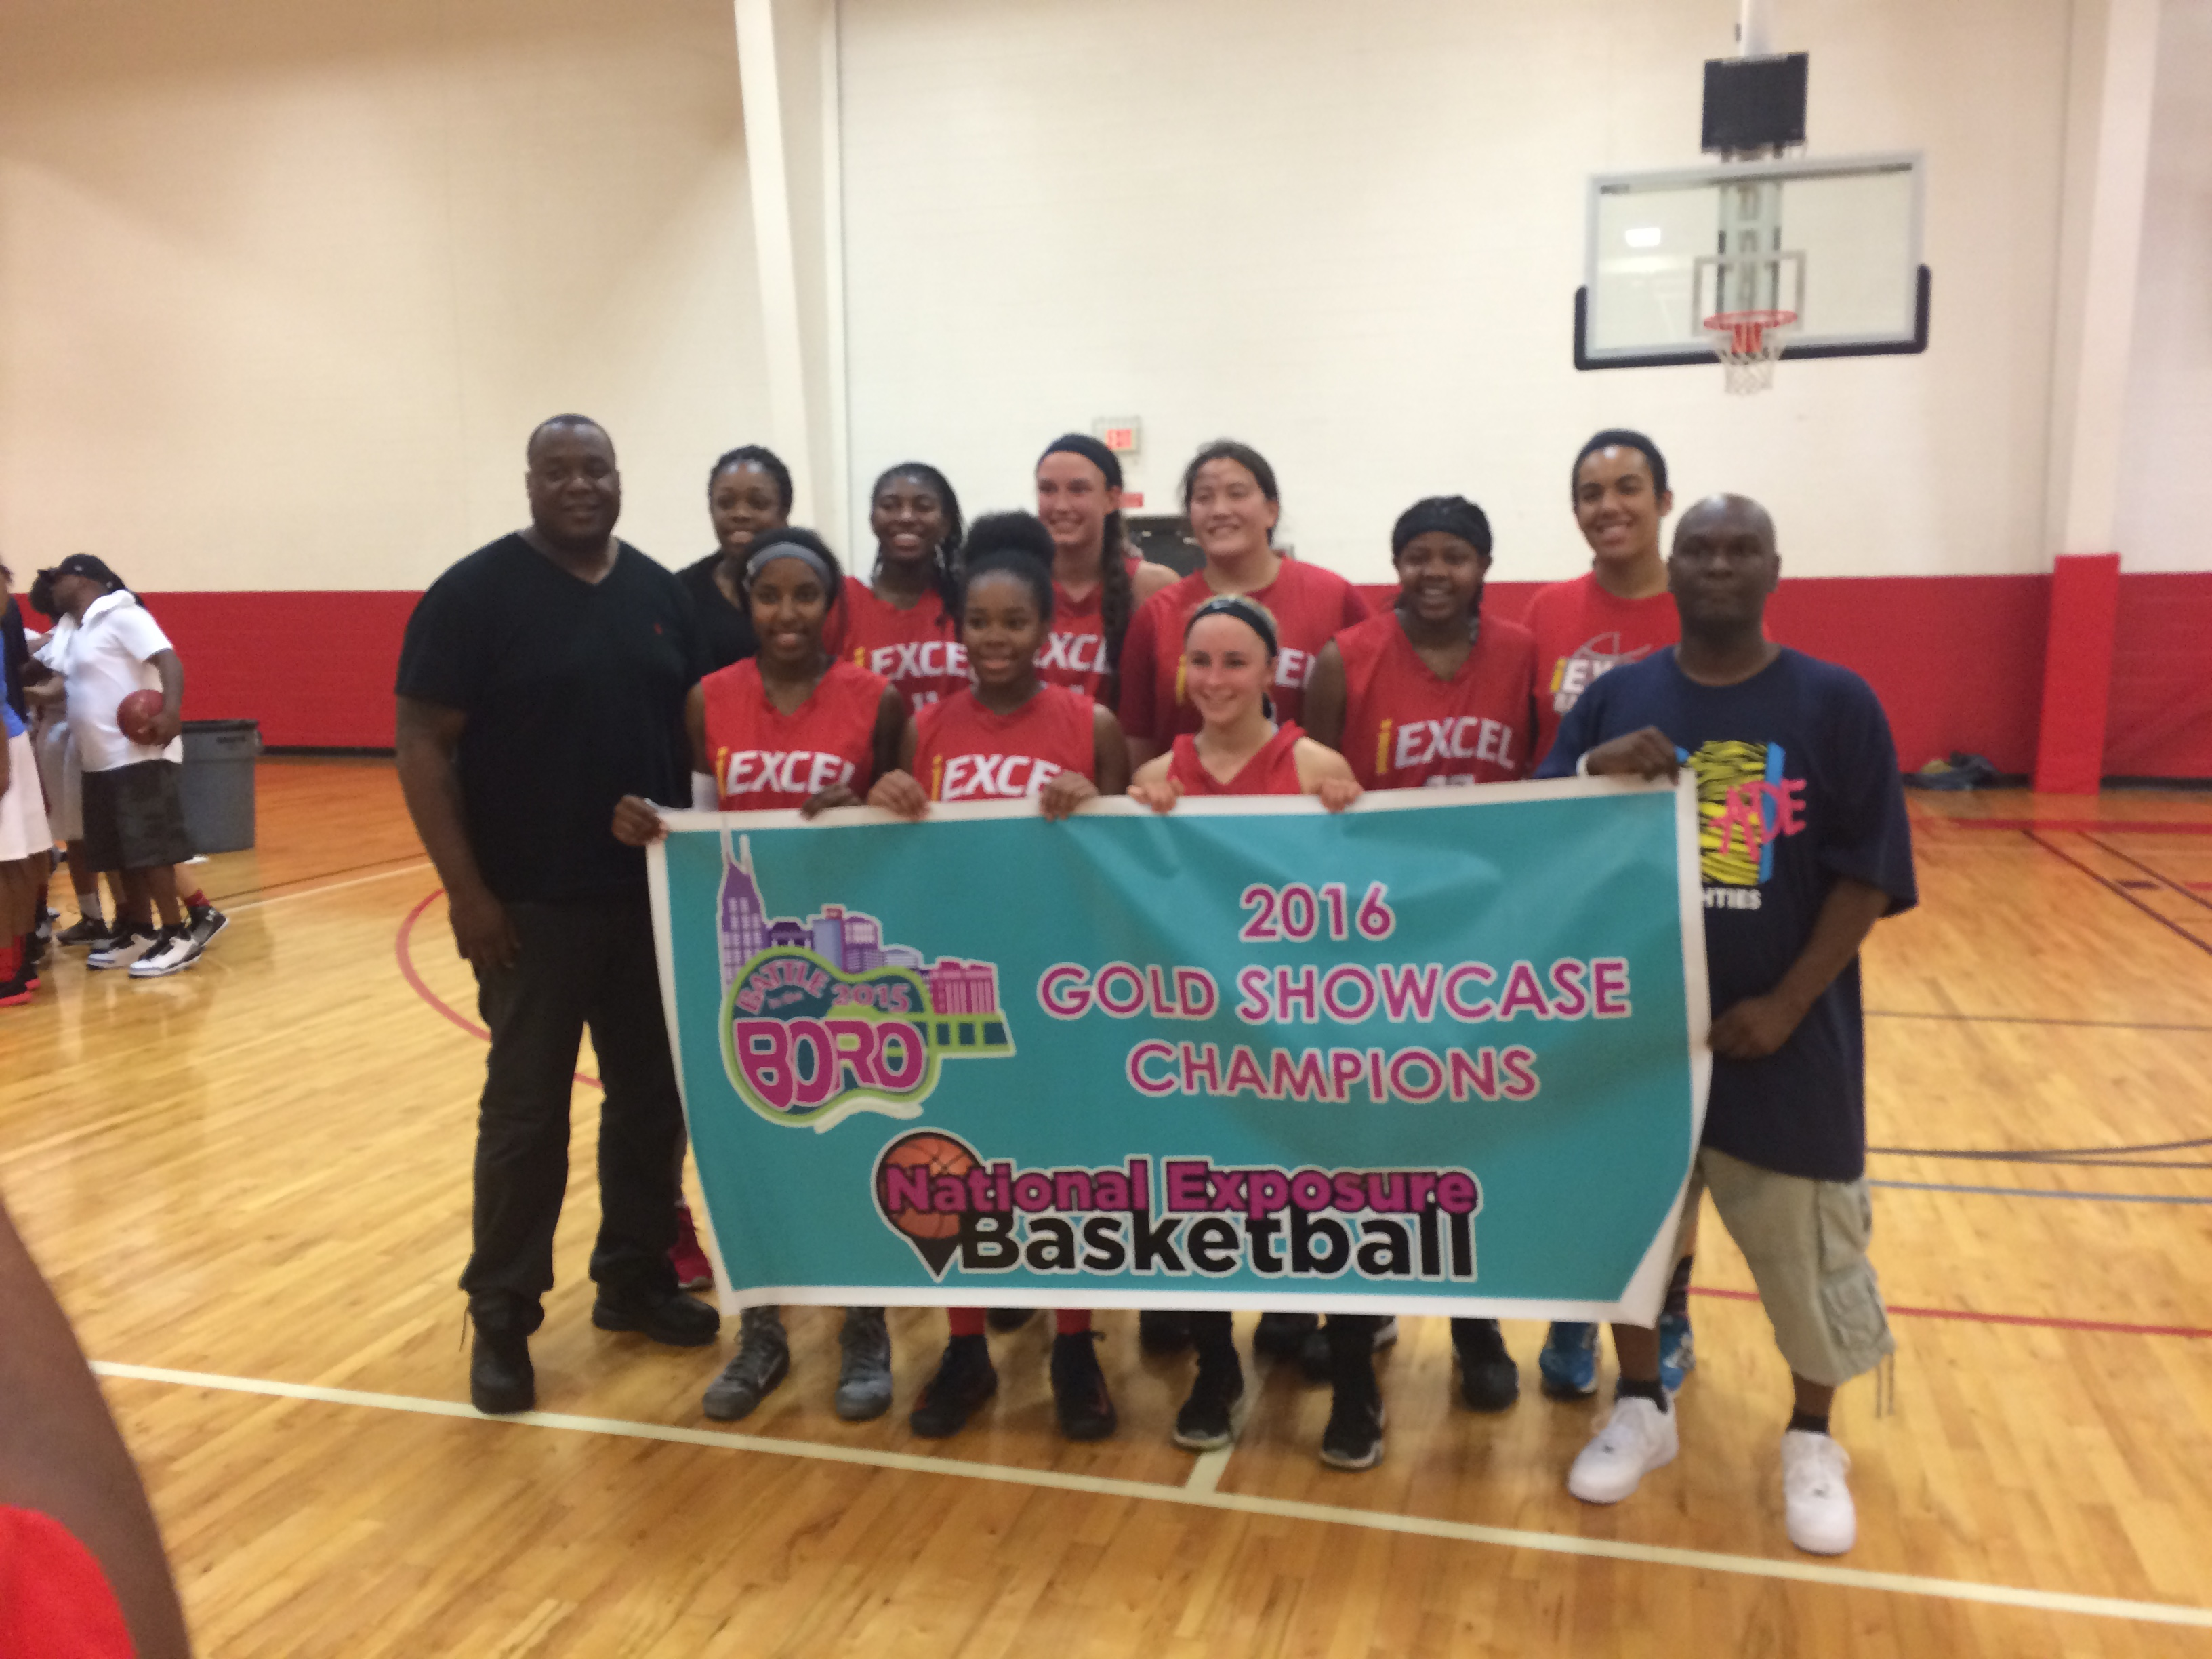 IExcel, 2015 Battle in the Boro 2016 Showcase Division Gold Bracket Champions